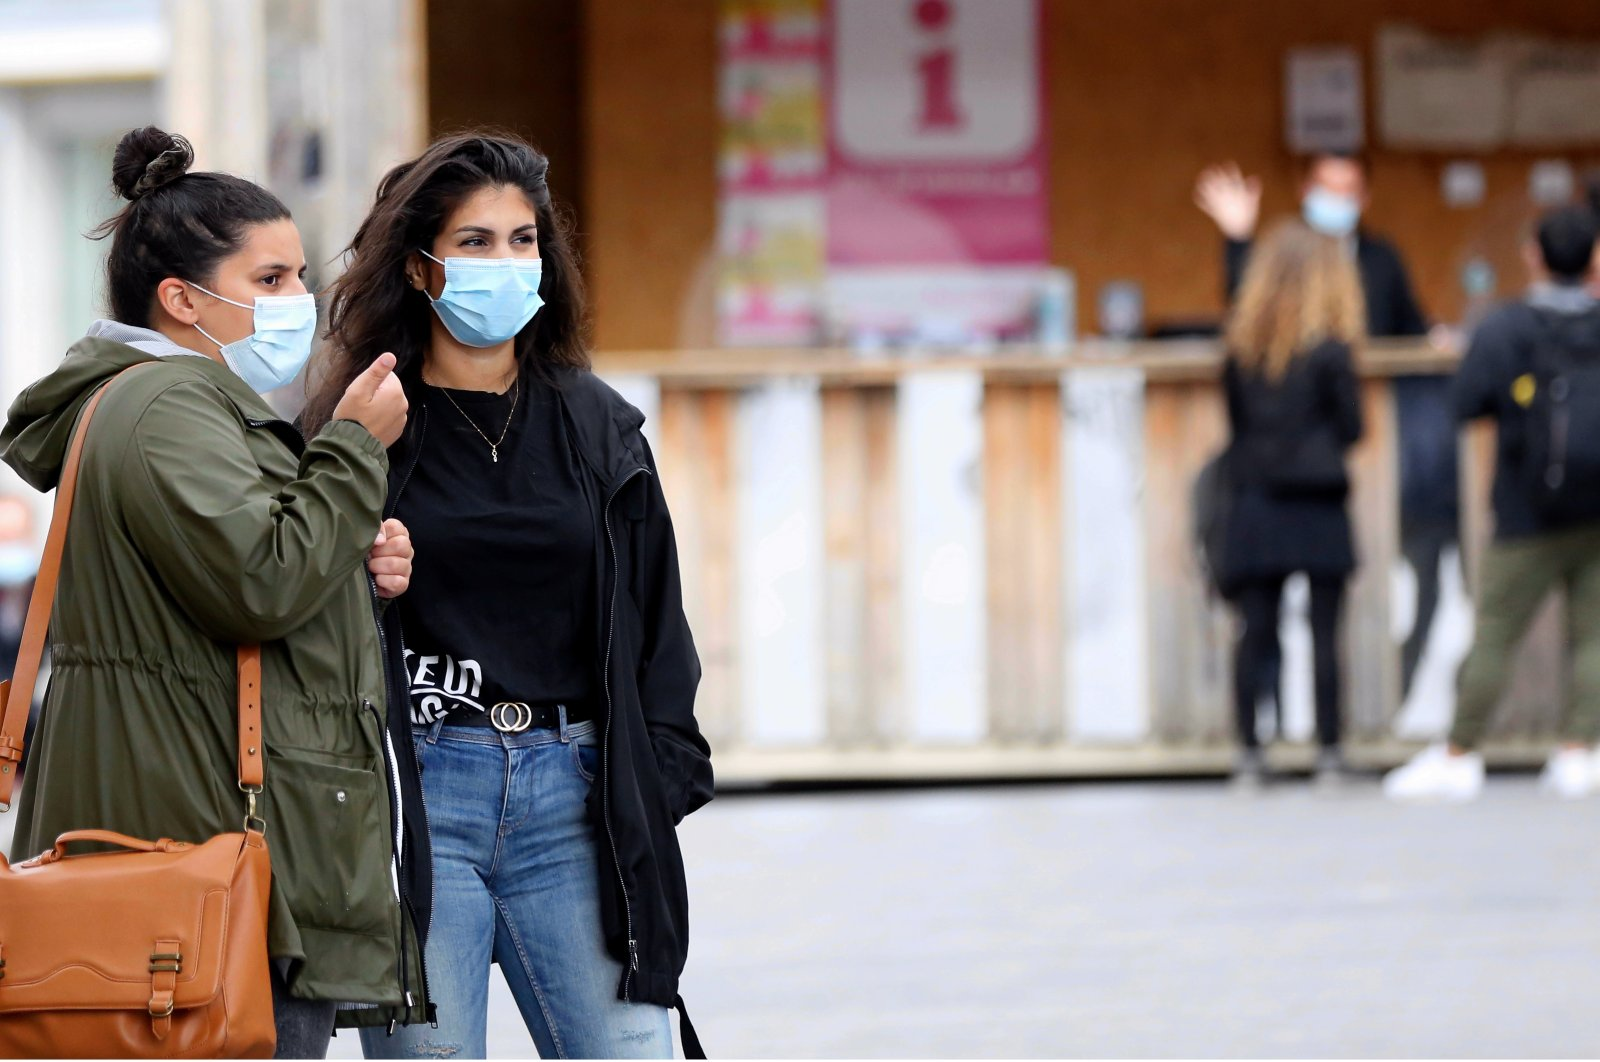 People wear protective face masks as a precaution against the coronavirus in Belgium's capital Brussels, July 28, 2020. (AA Photo)